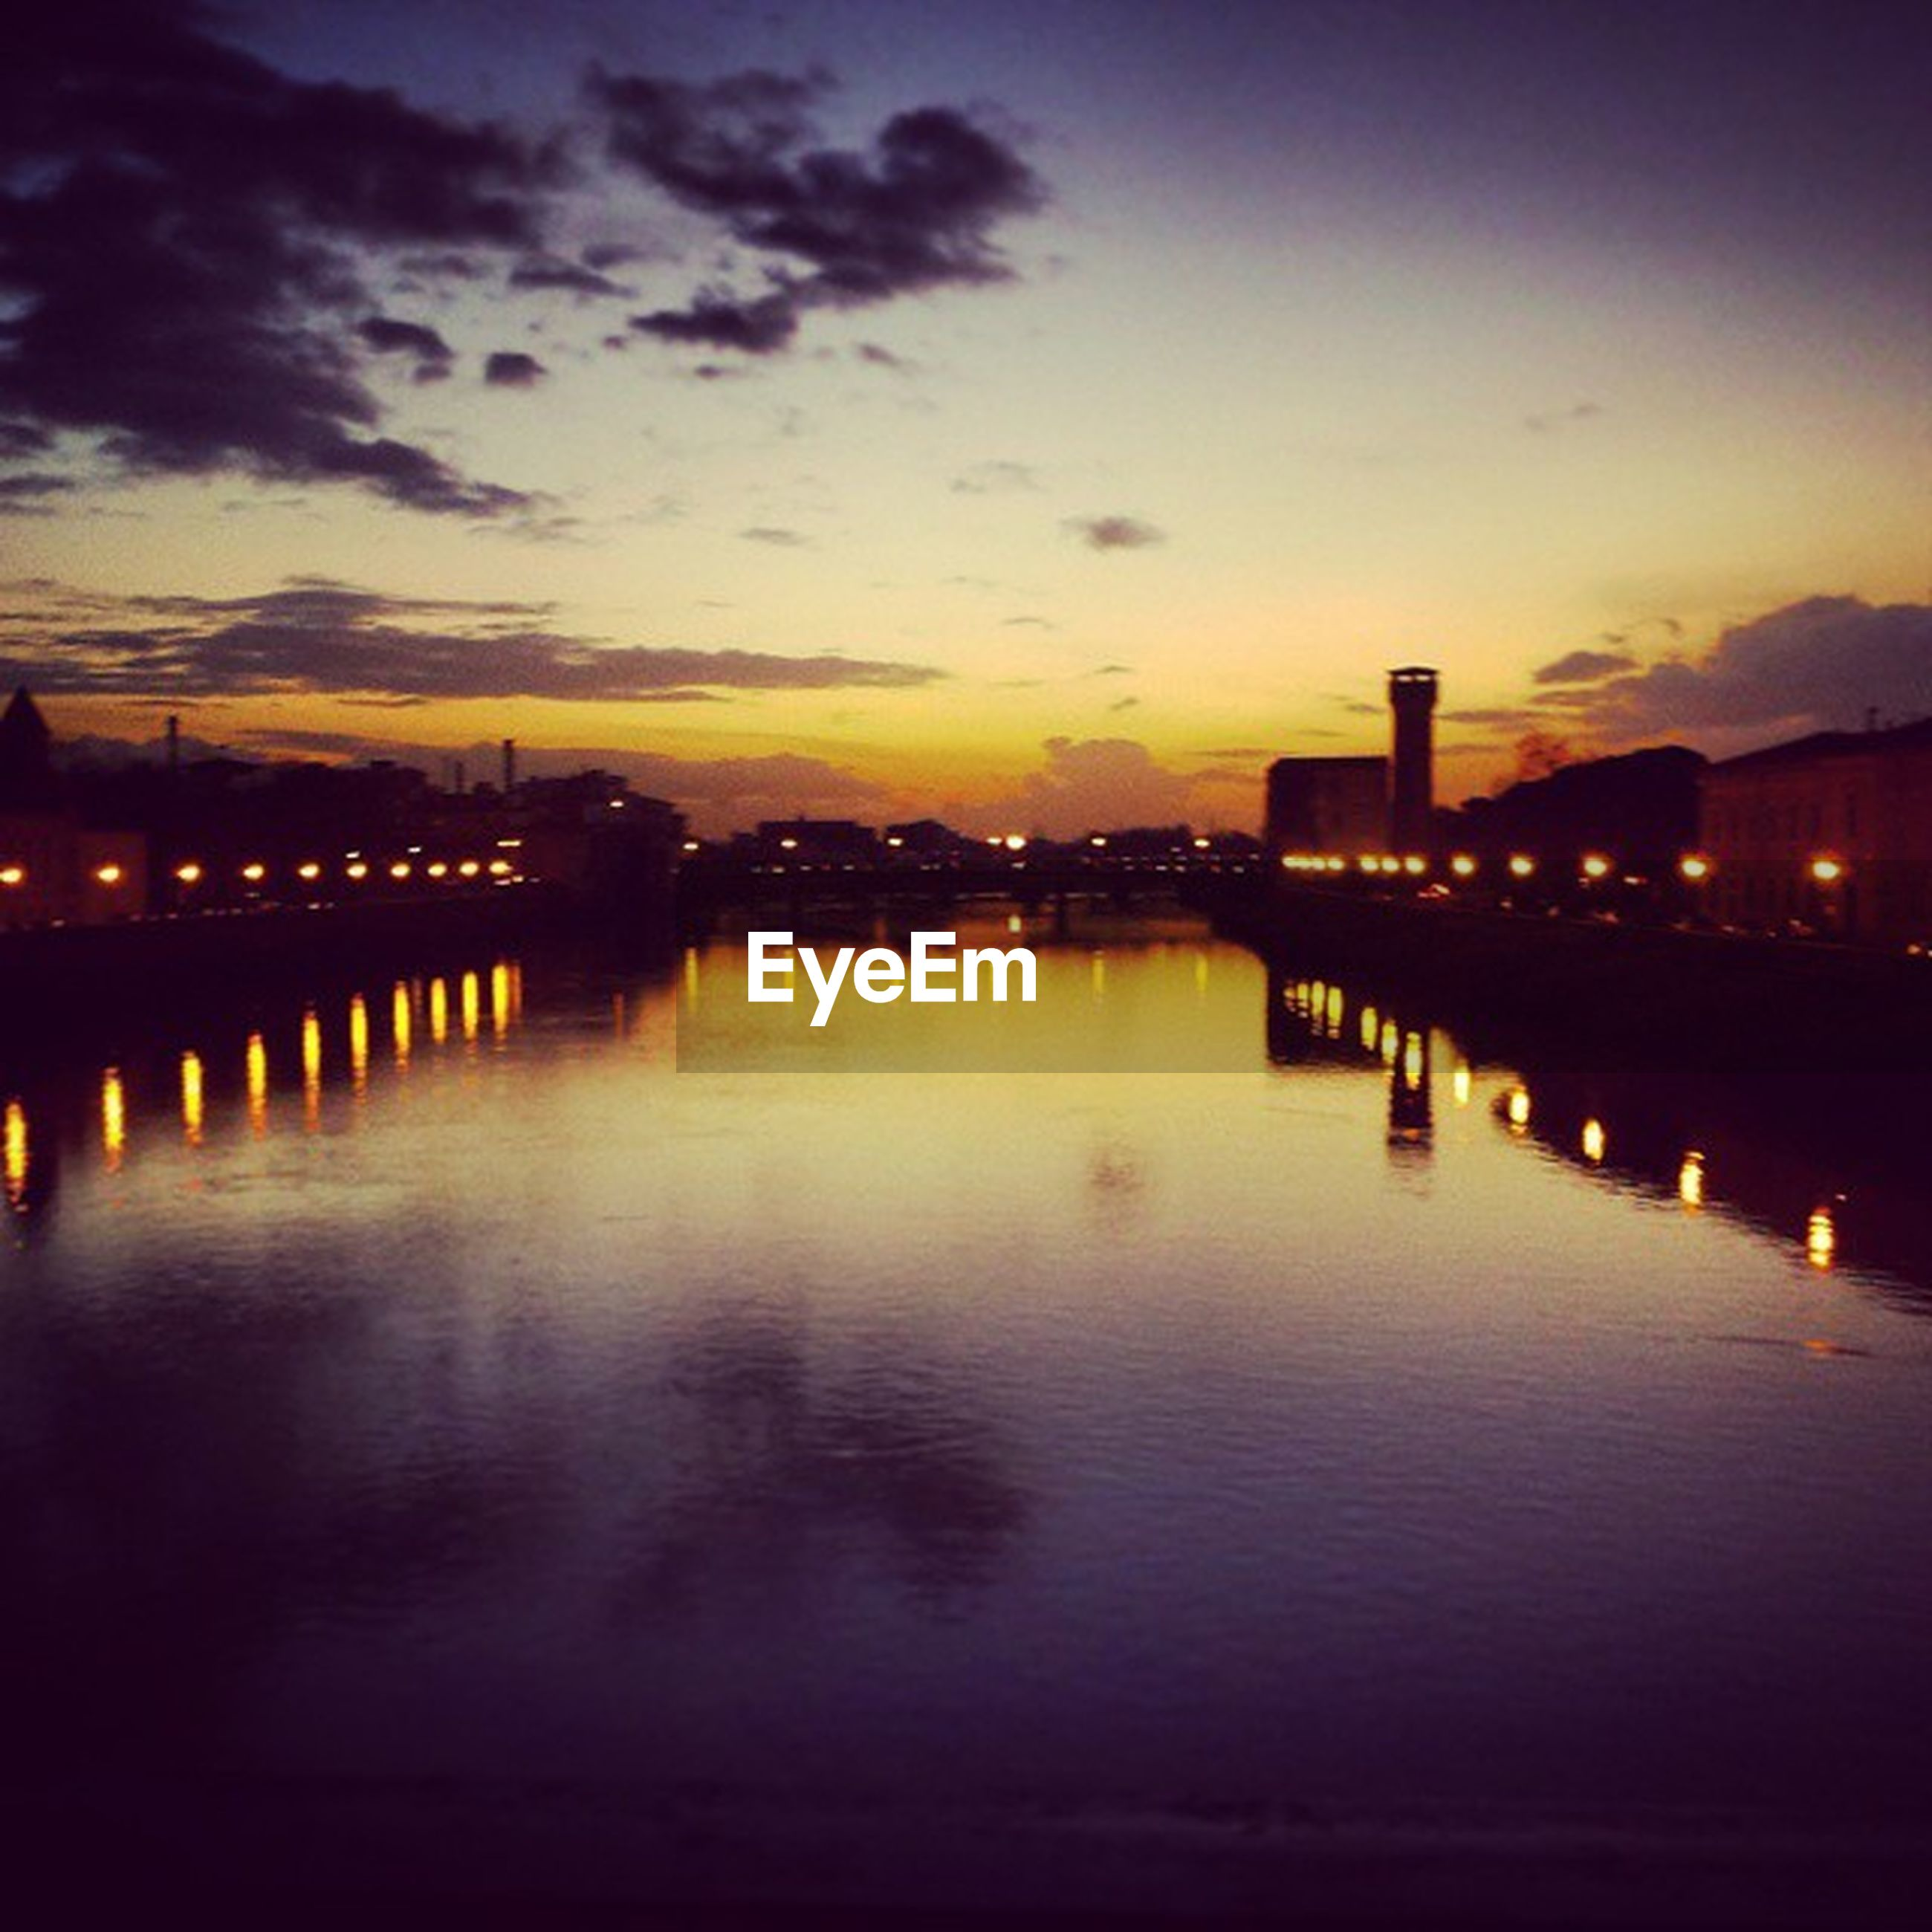 illuminated, water, sunset, reflection, built structure, architecture, night, sky, river, waterfront, silhouette, dusk, pier, connection, bridge - man made structure, building exterior, sea, city, street light, scenics